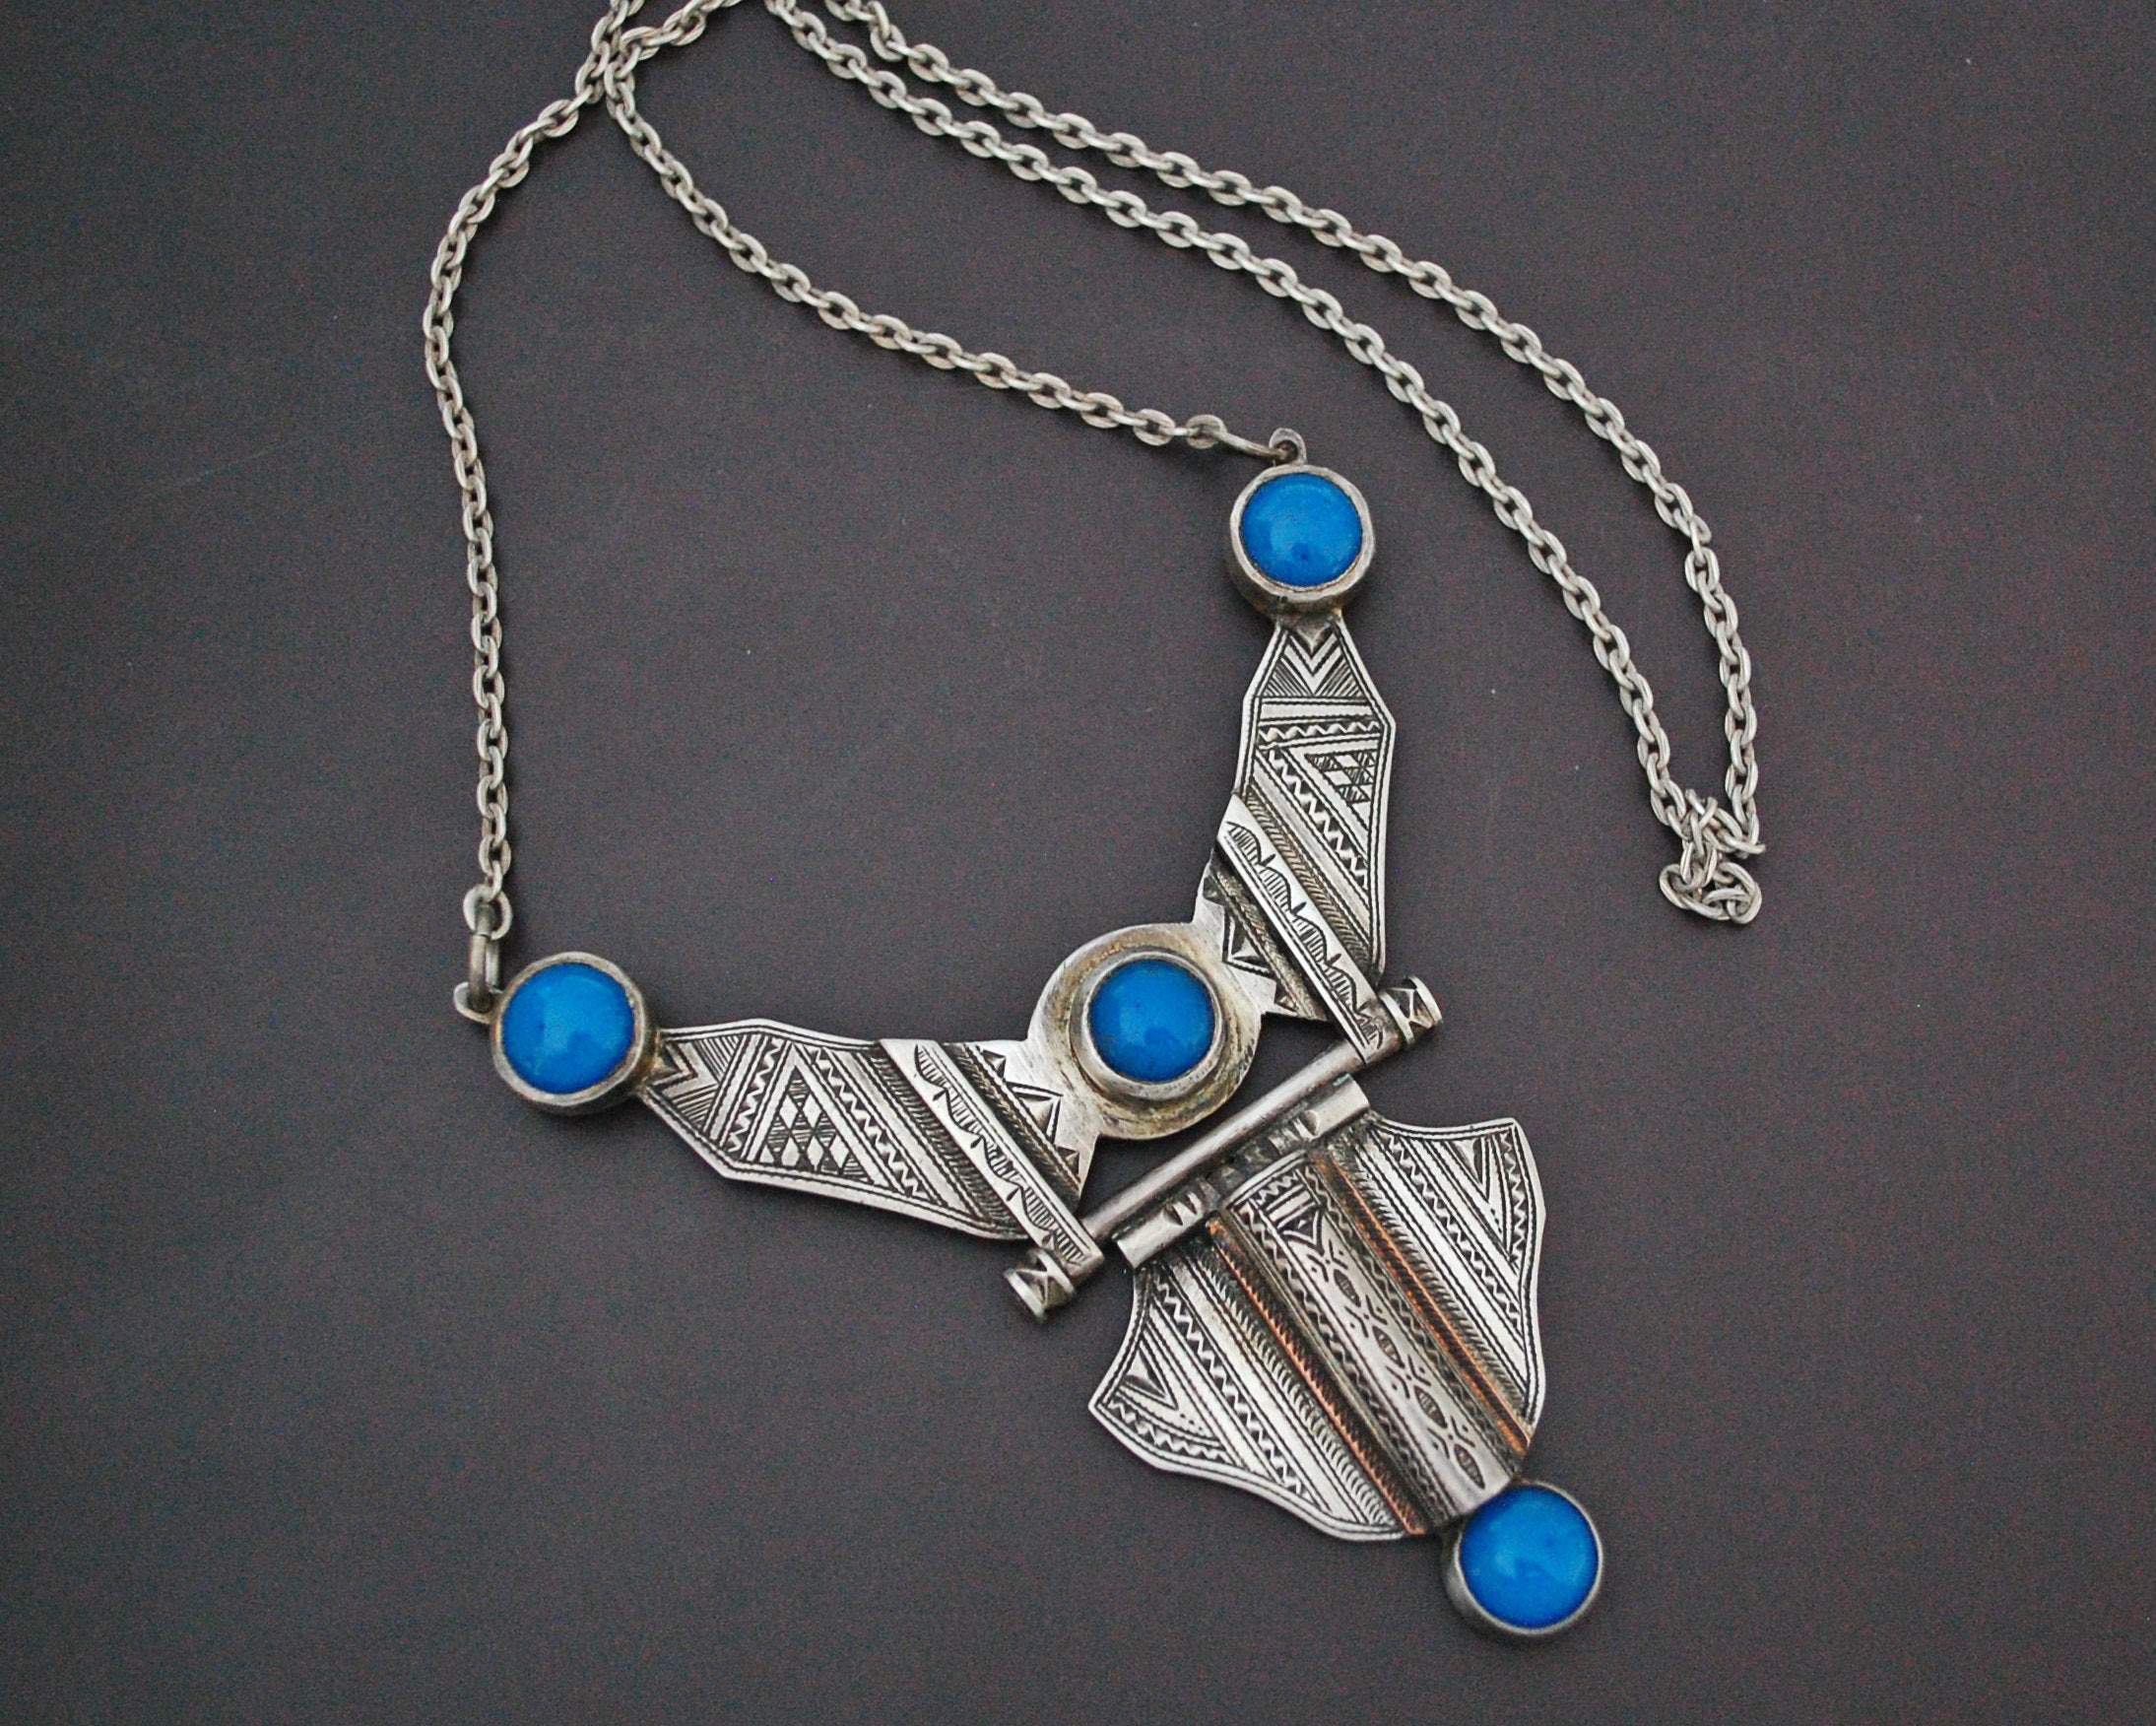 Tuareg Blue Beads Carved Pendant Necklace